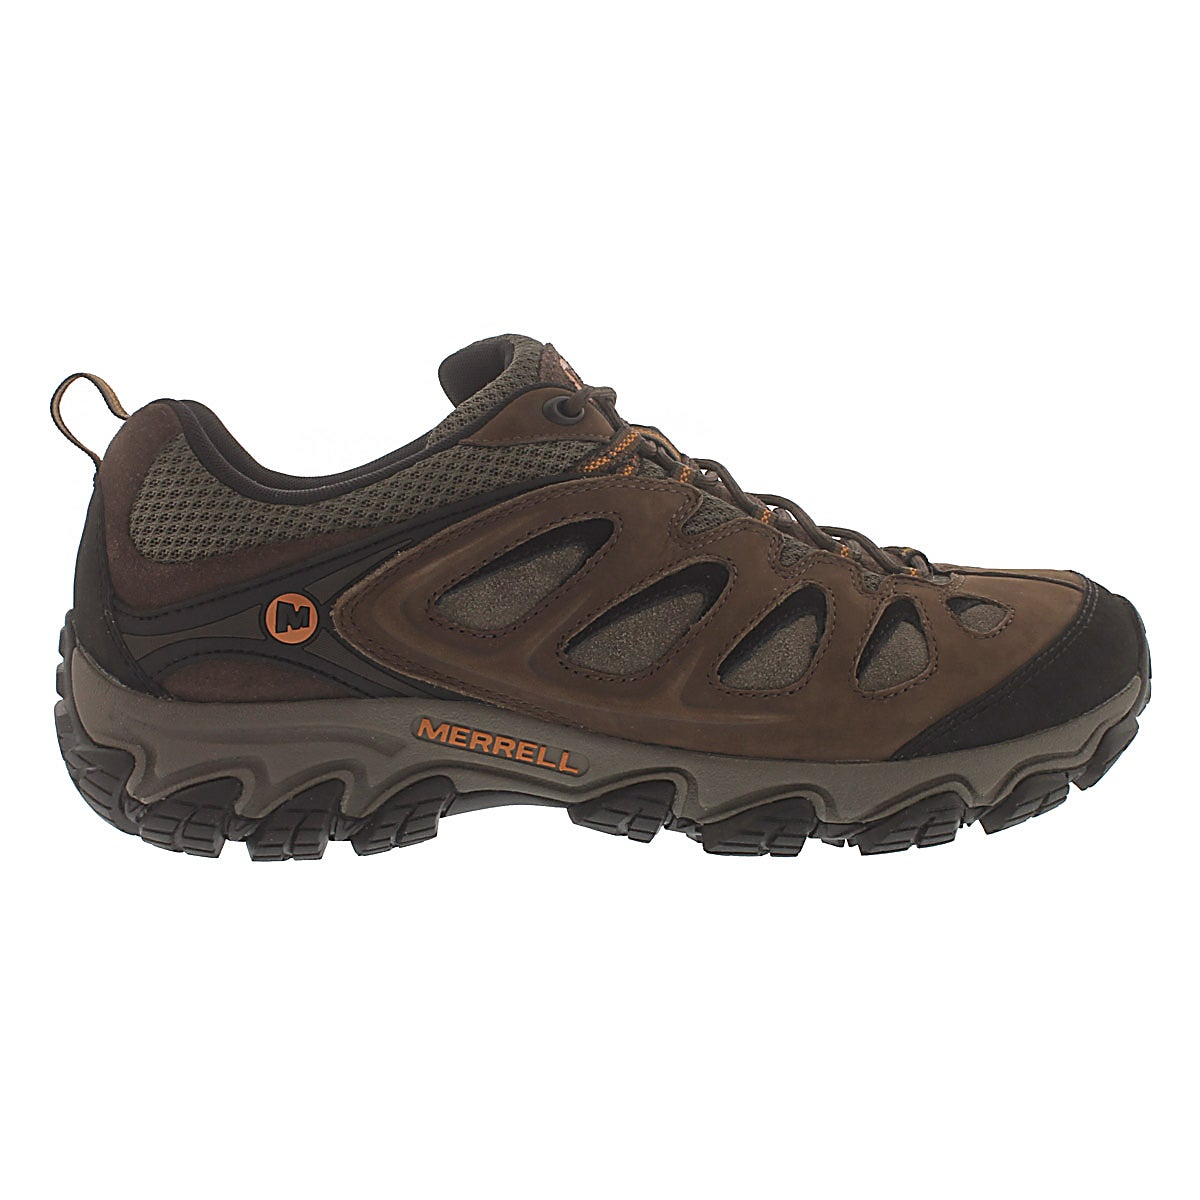 Mns Pulsate brn casual hiking shoe